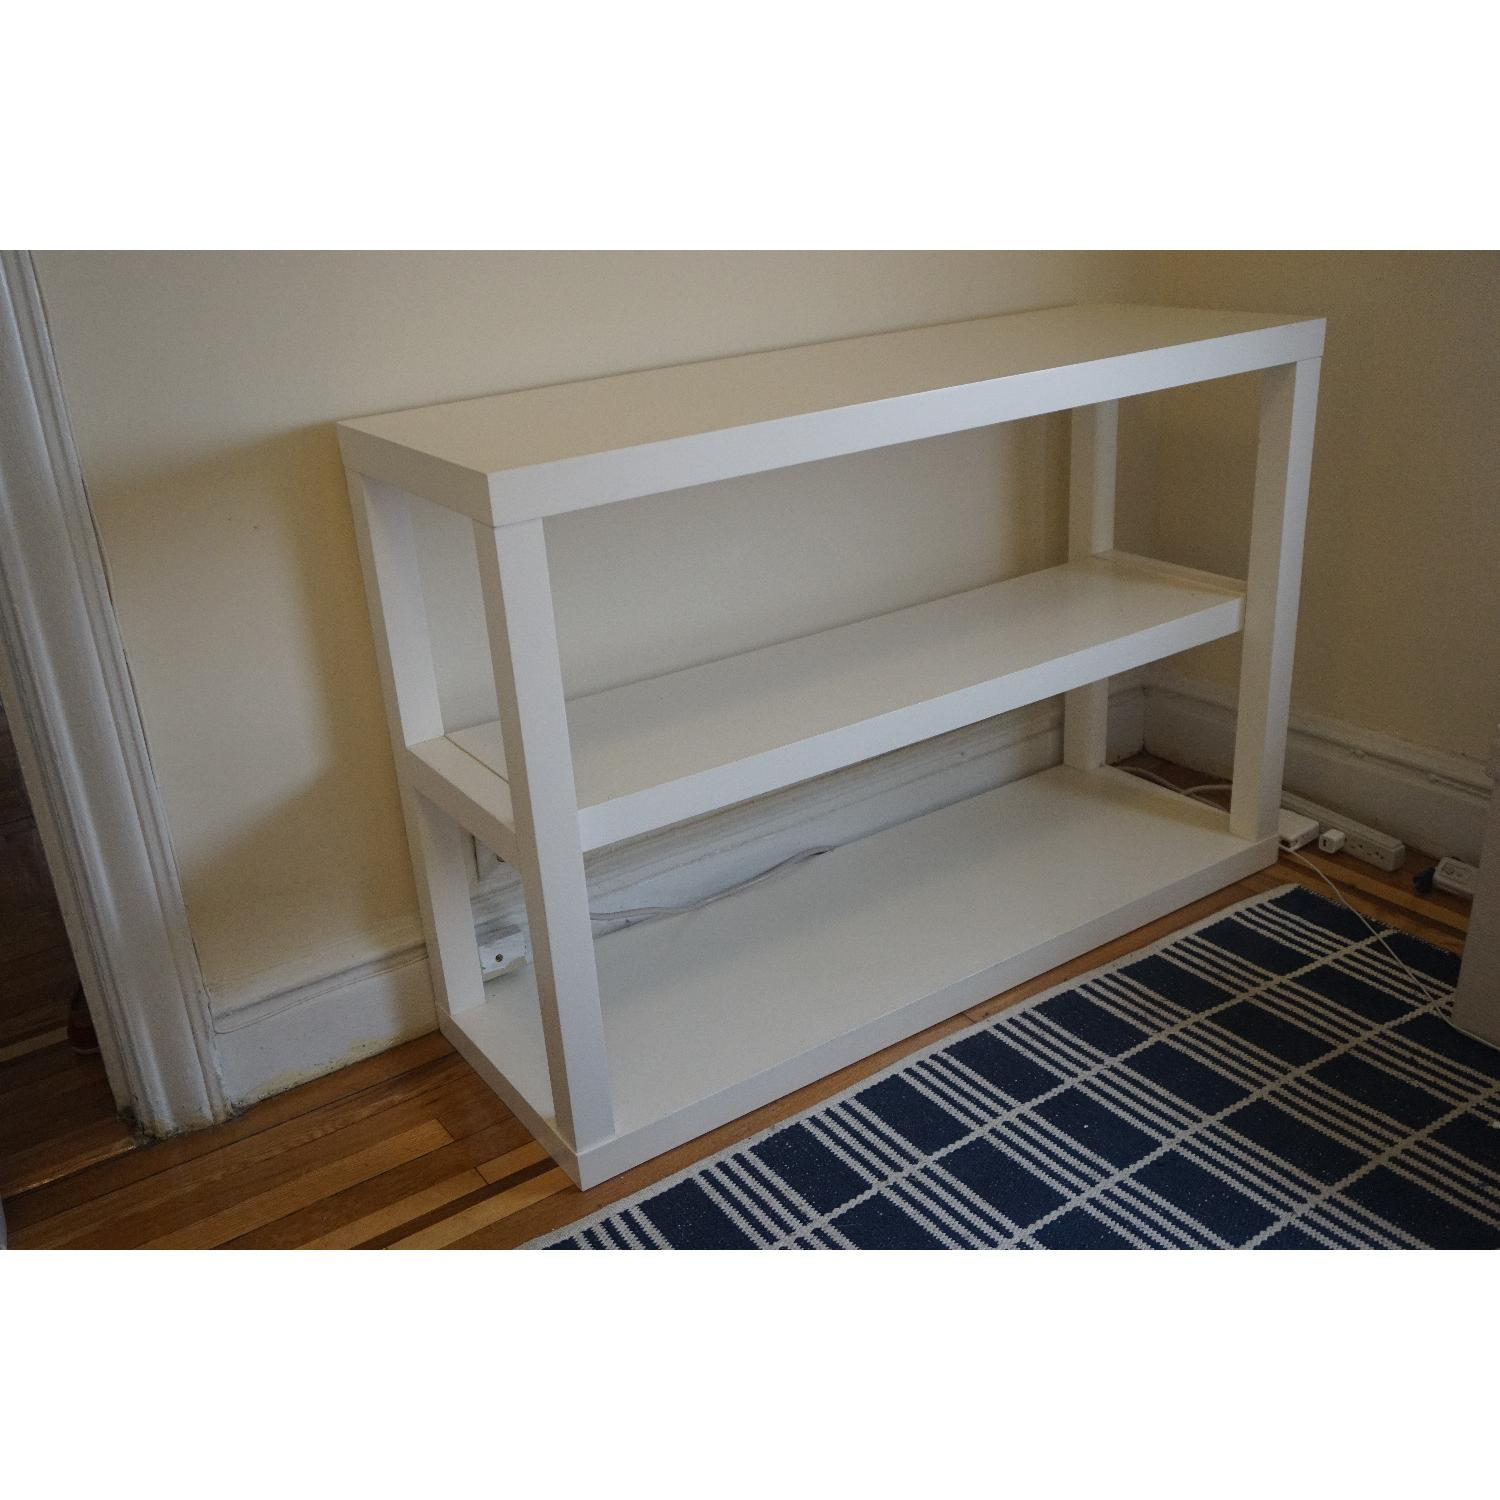 West Elm Parsons Low Bookcase in White - image-2